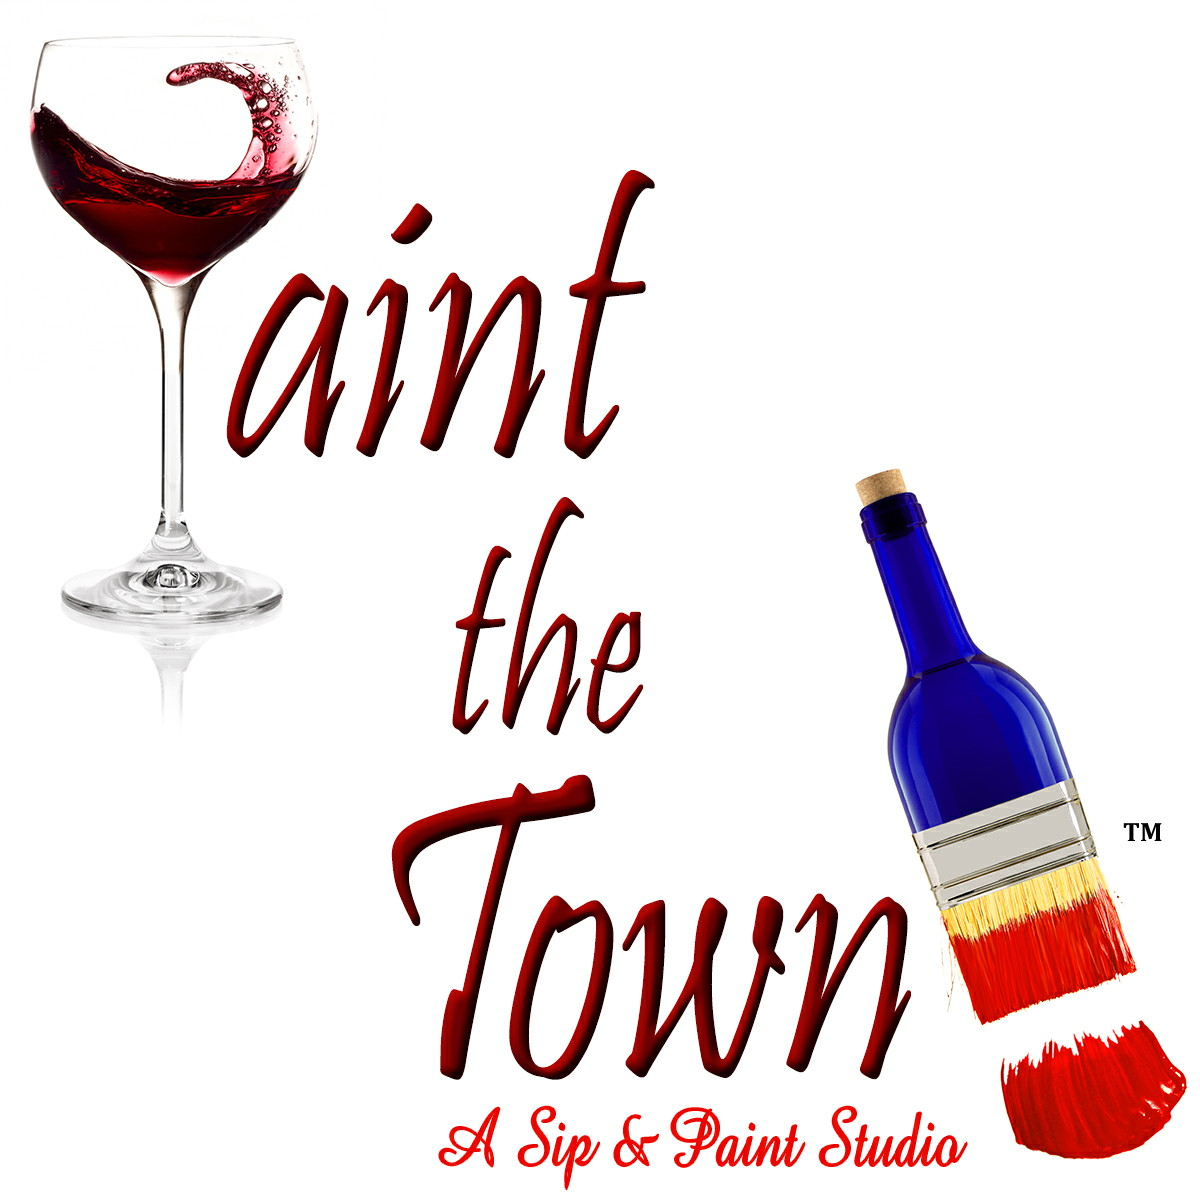 Paint The Town Studios LLC | Cranston, RI-A Rhode Island sip paint and wine studio